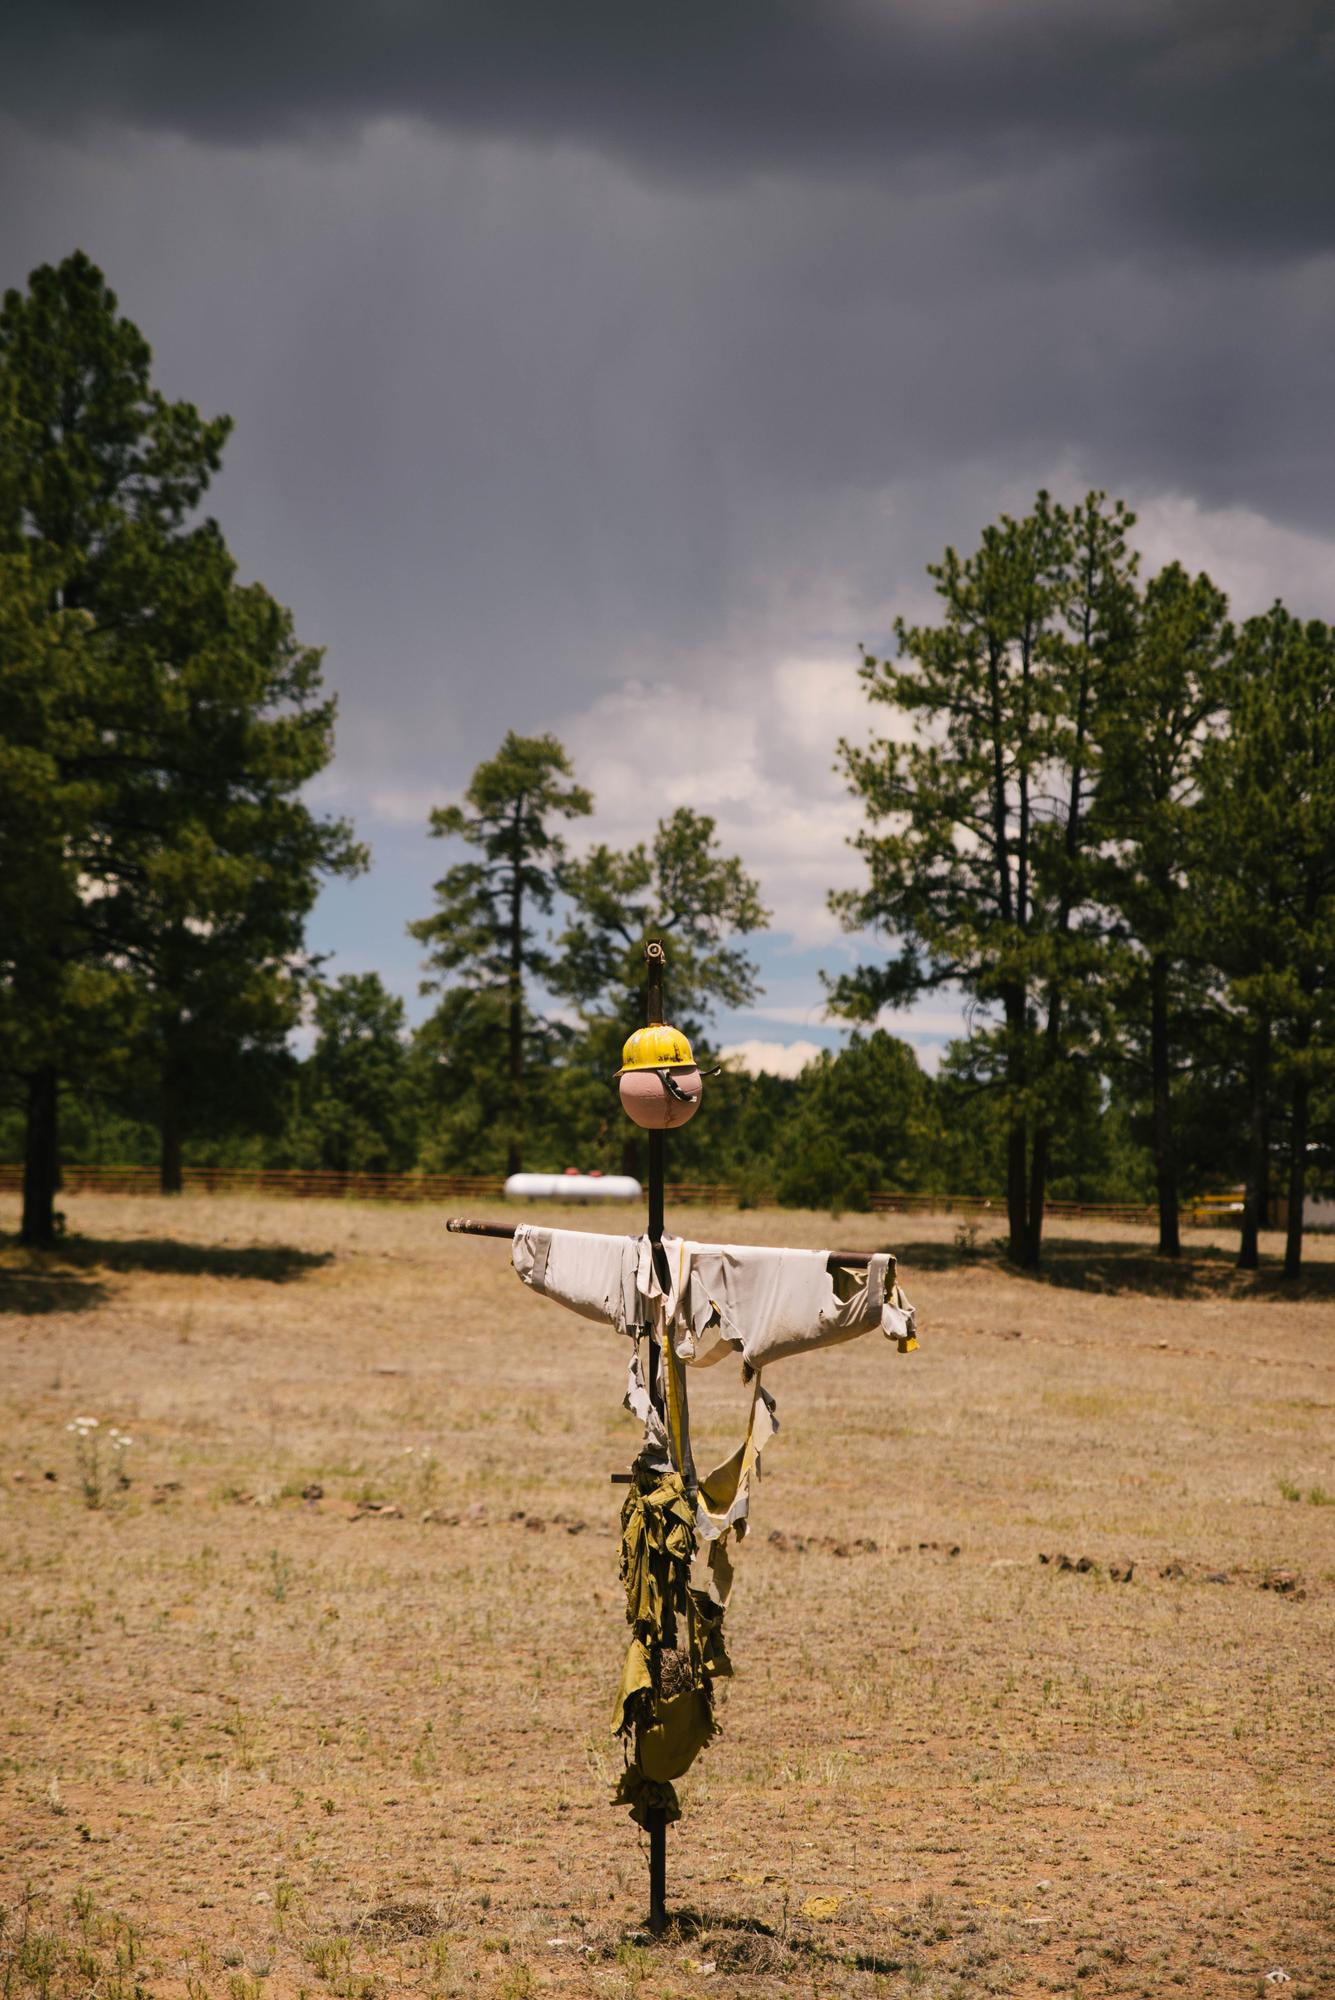 Firefighter Scarecrow at Beaverhead Work Station (Spencer Harding)